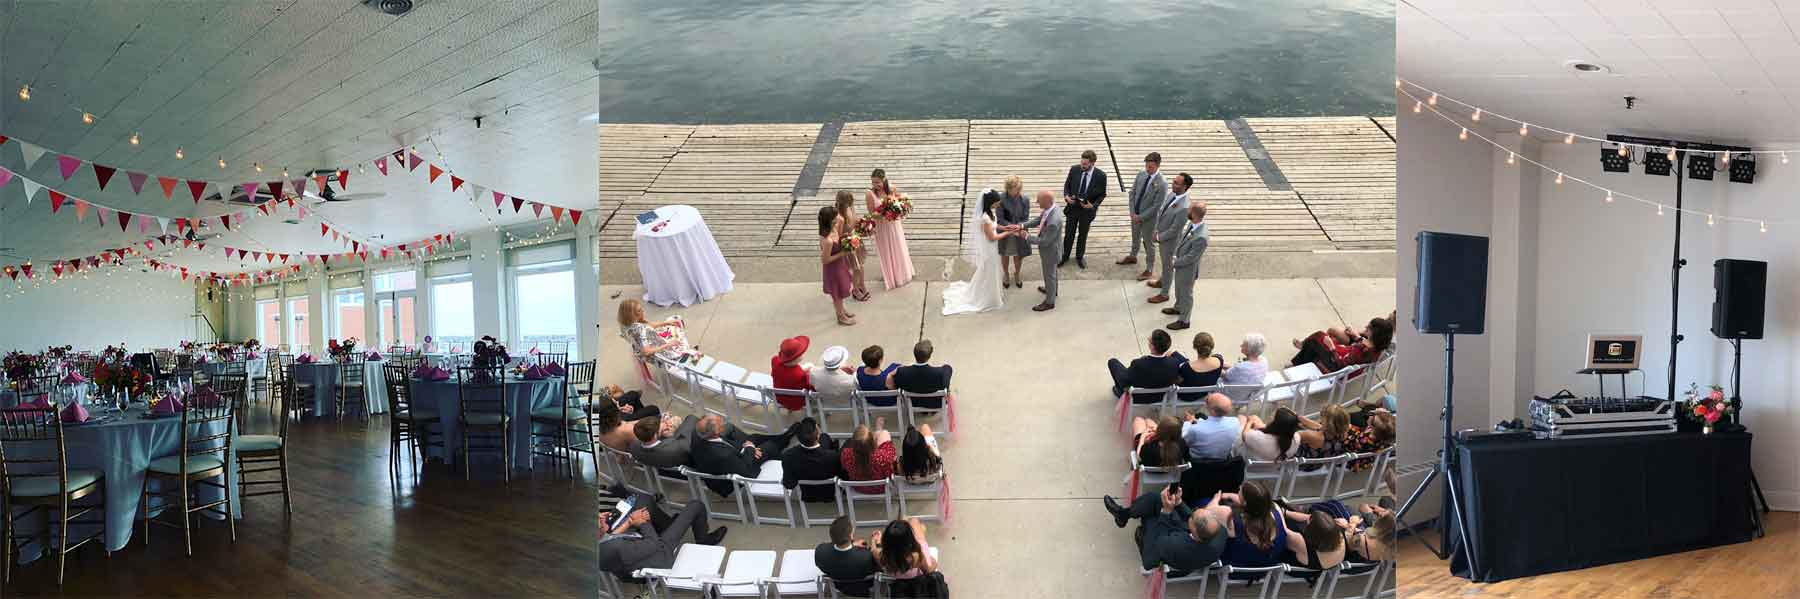 Toronto-Wedding-DJ---Argonaut-Rowing-Club-Wedding